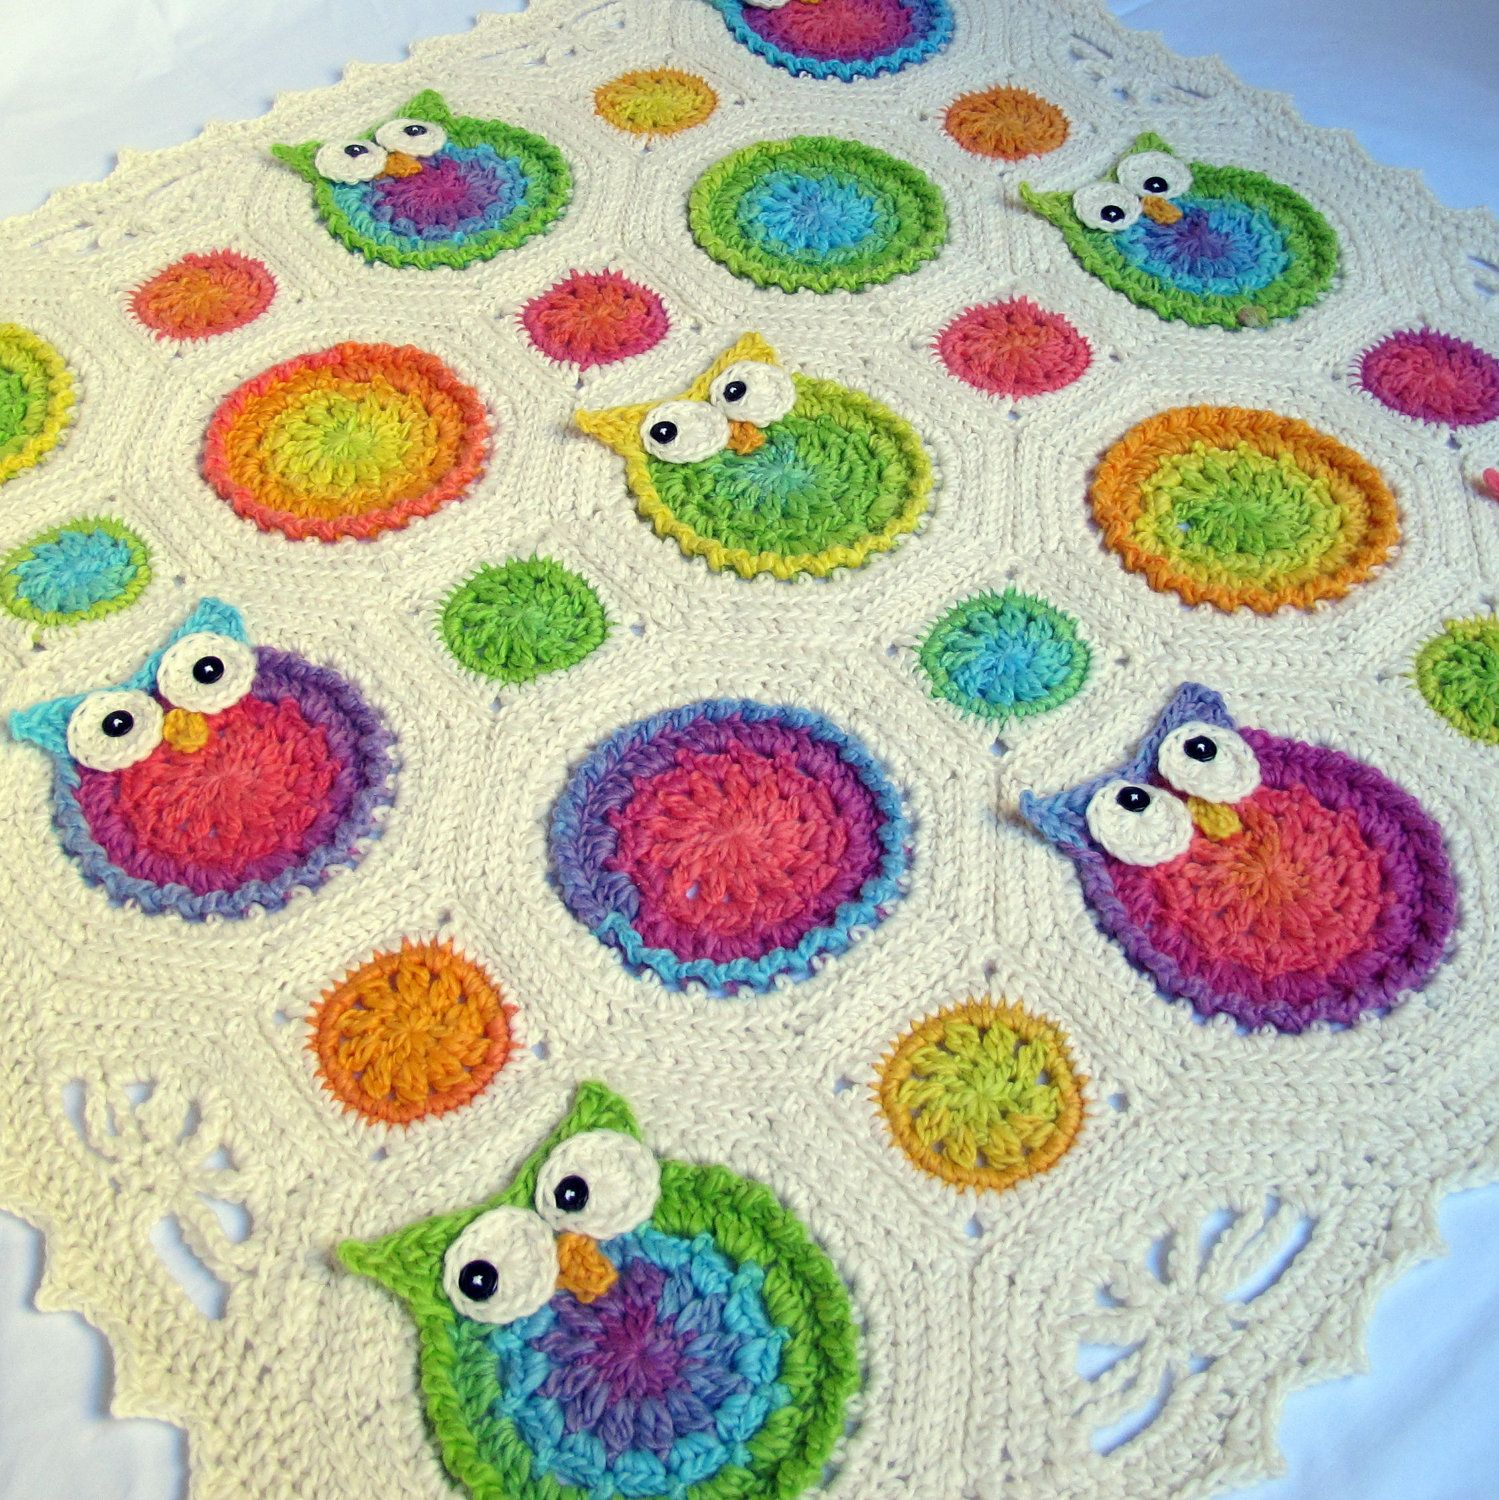 CROCHET PATTERN - Owl Obsession - a colorful owl afghan pattern ...